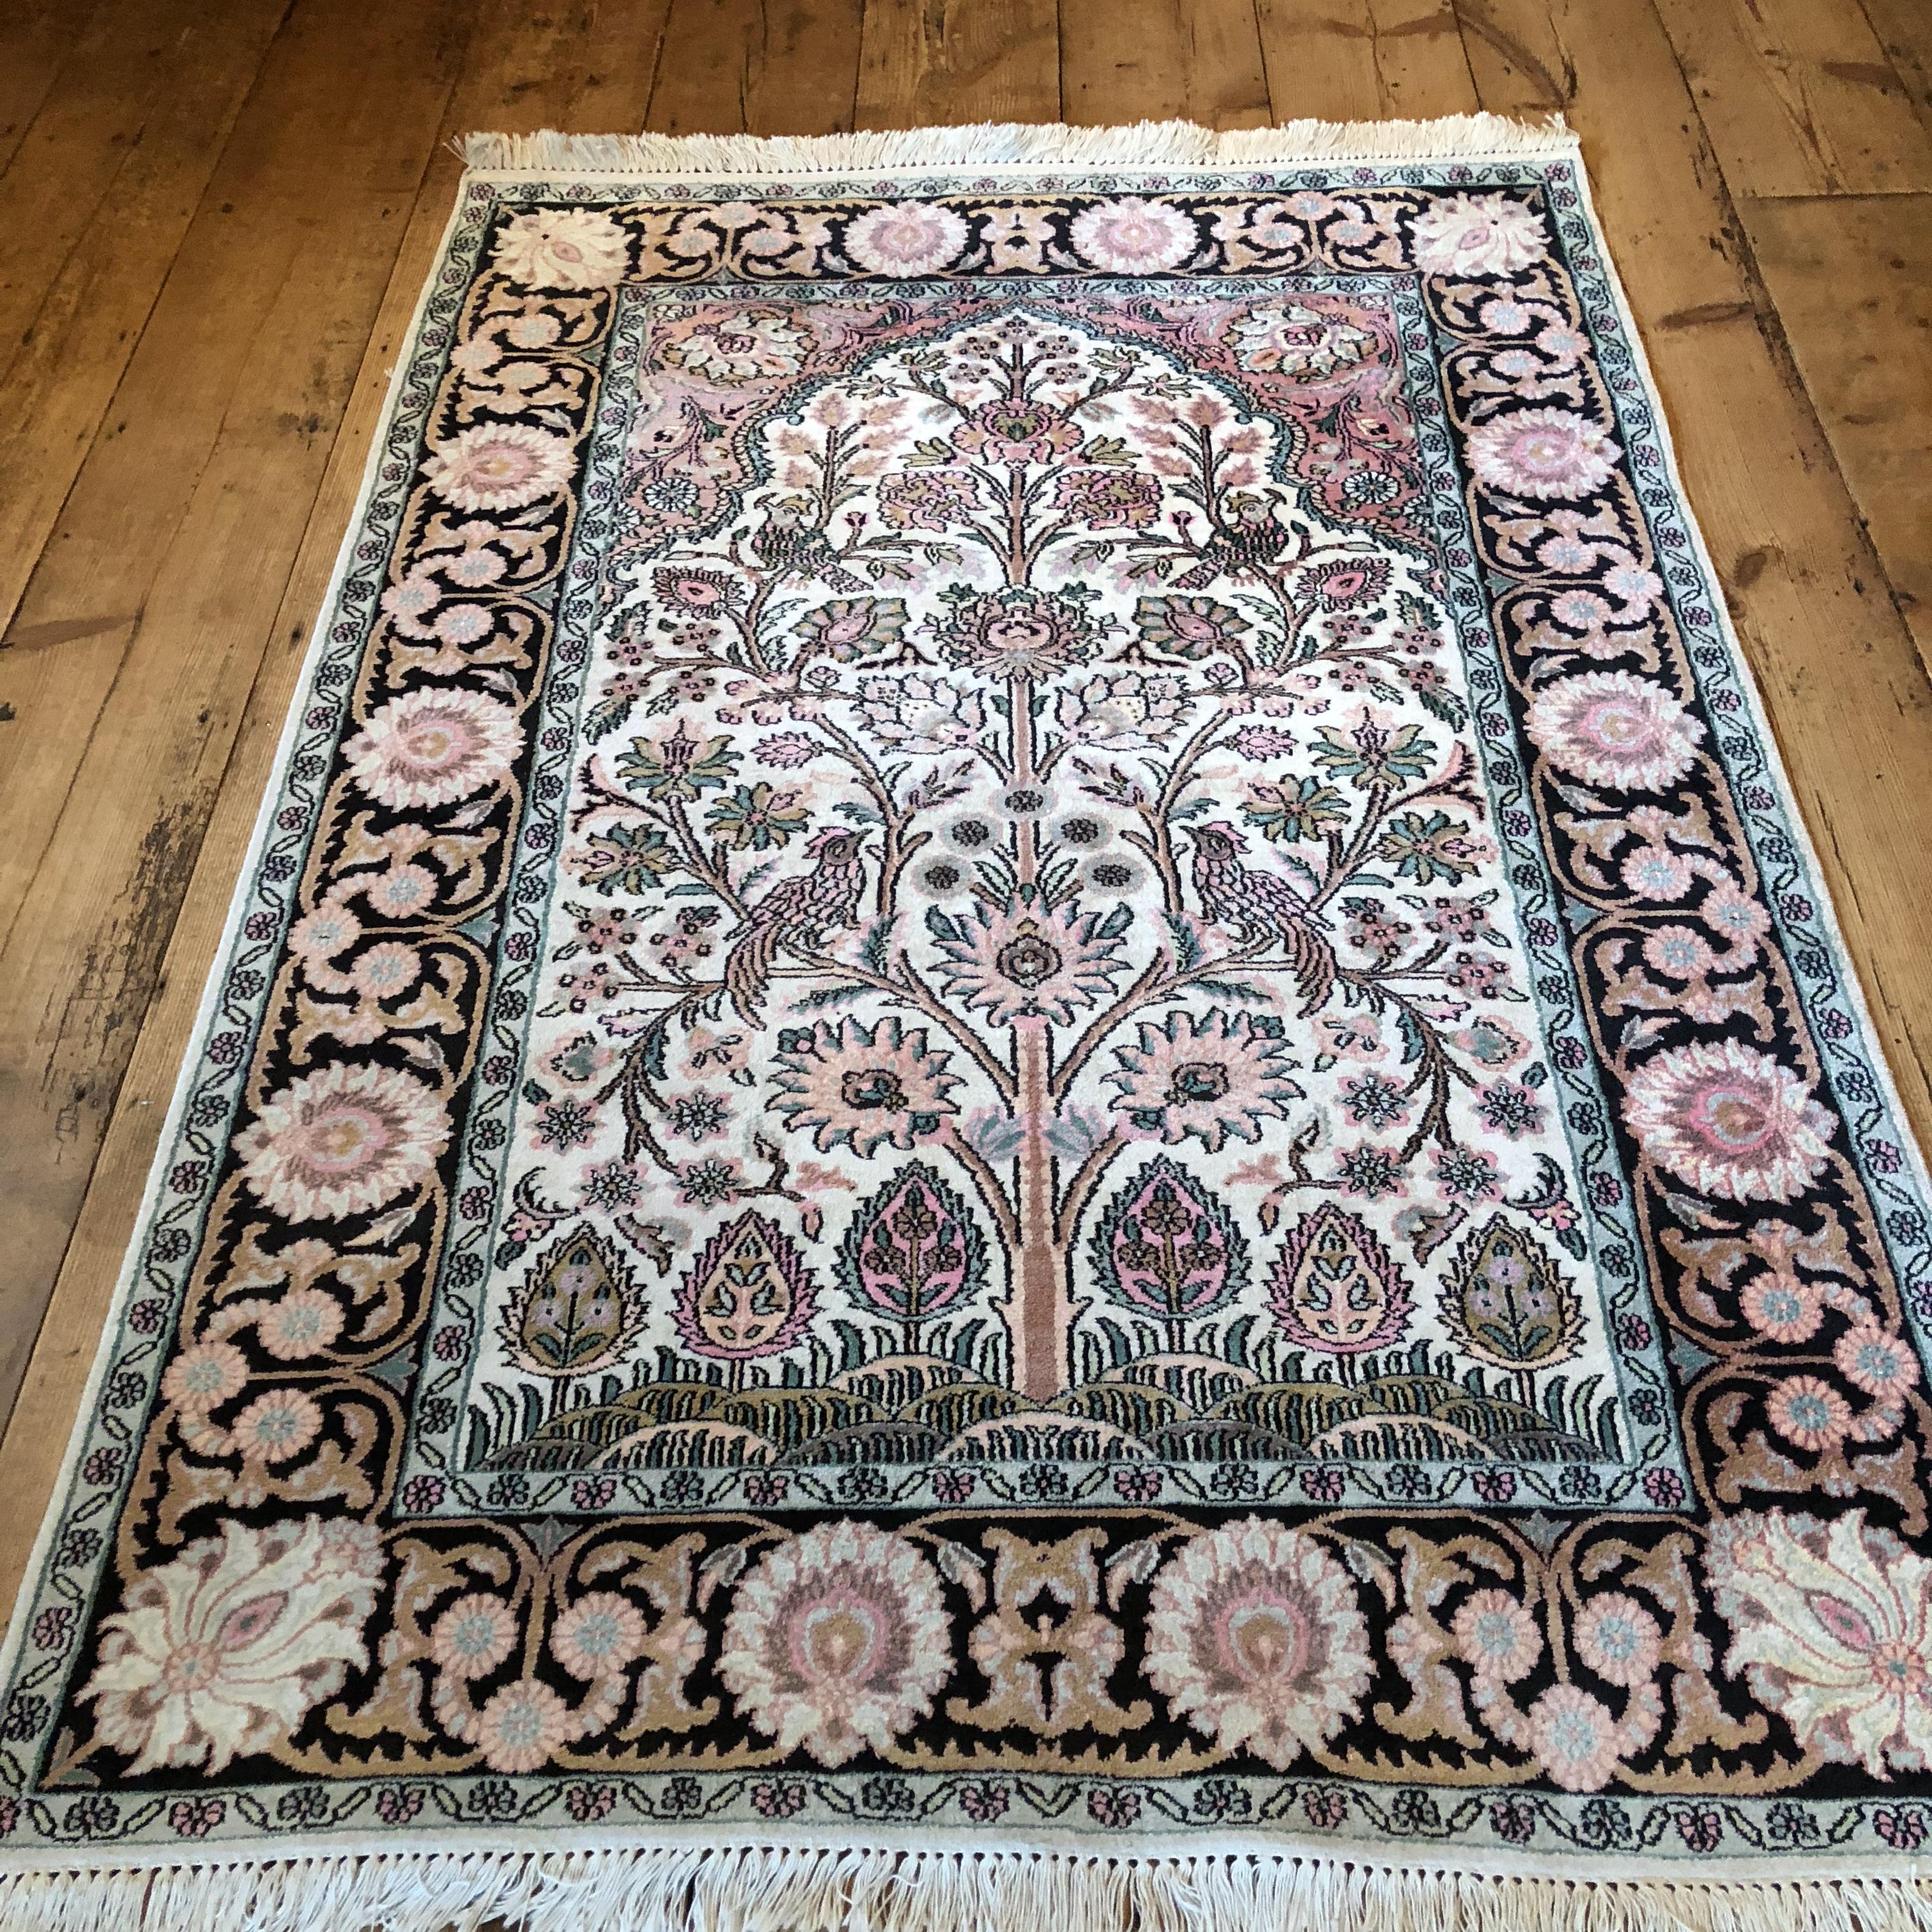 A Stunning Hand Knotted Pictorial Kashmir Rug Tree Of Life